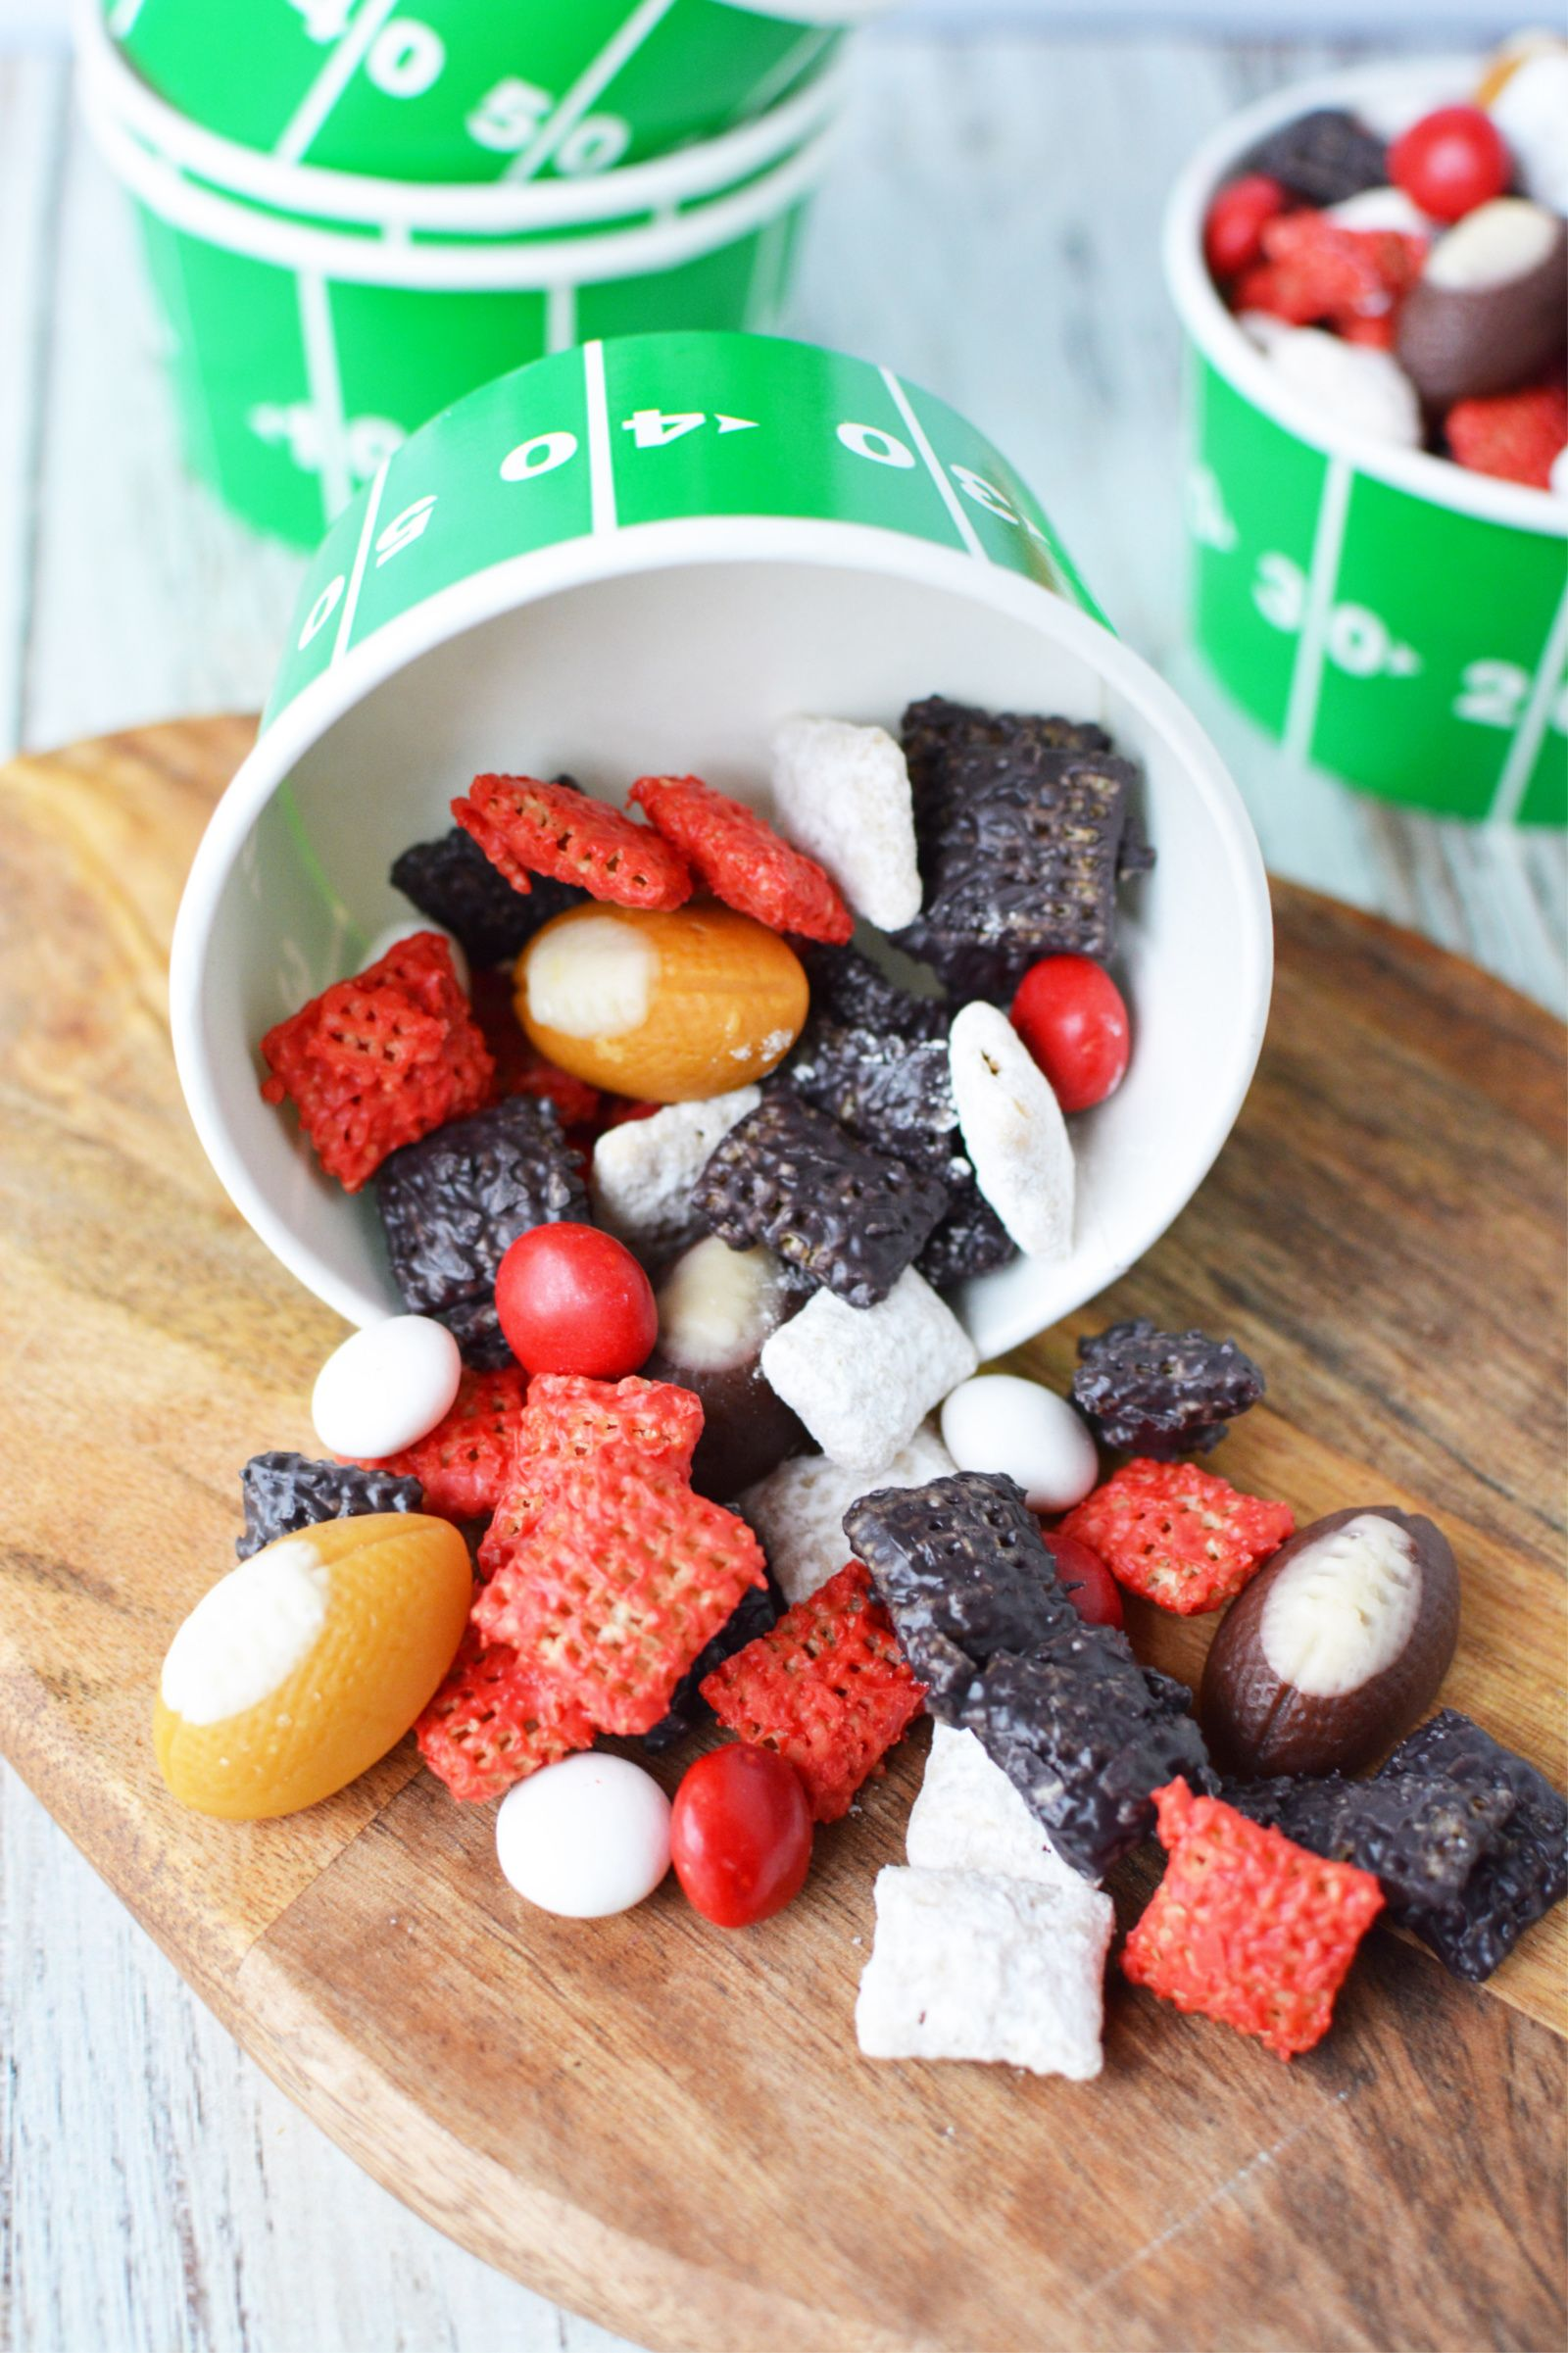 Preparing For A Football Party Or Big Game Get Ready To Kick Off Your Football Party By Serving This Super Easy Atlanta Falcons Puppy Chow Mix Puppy Chow Mix